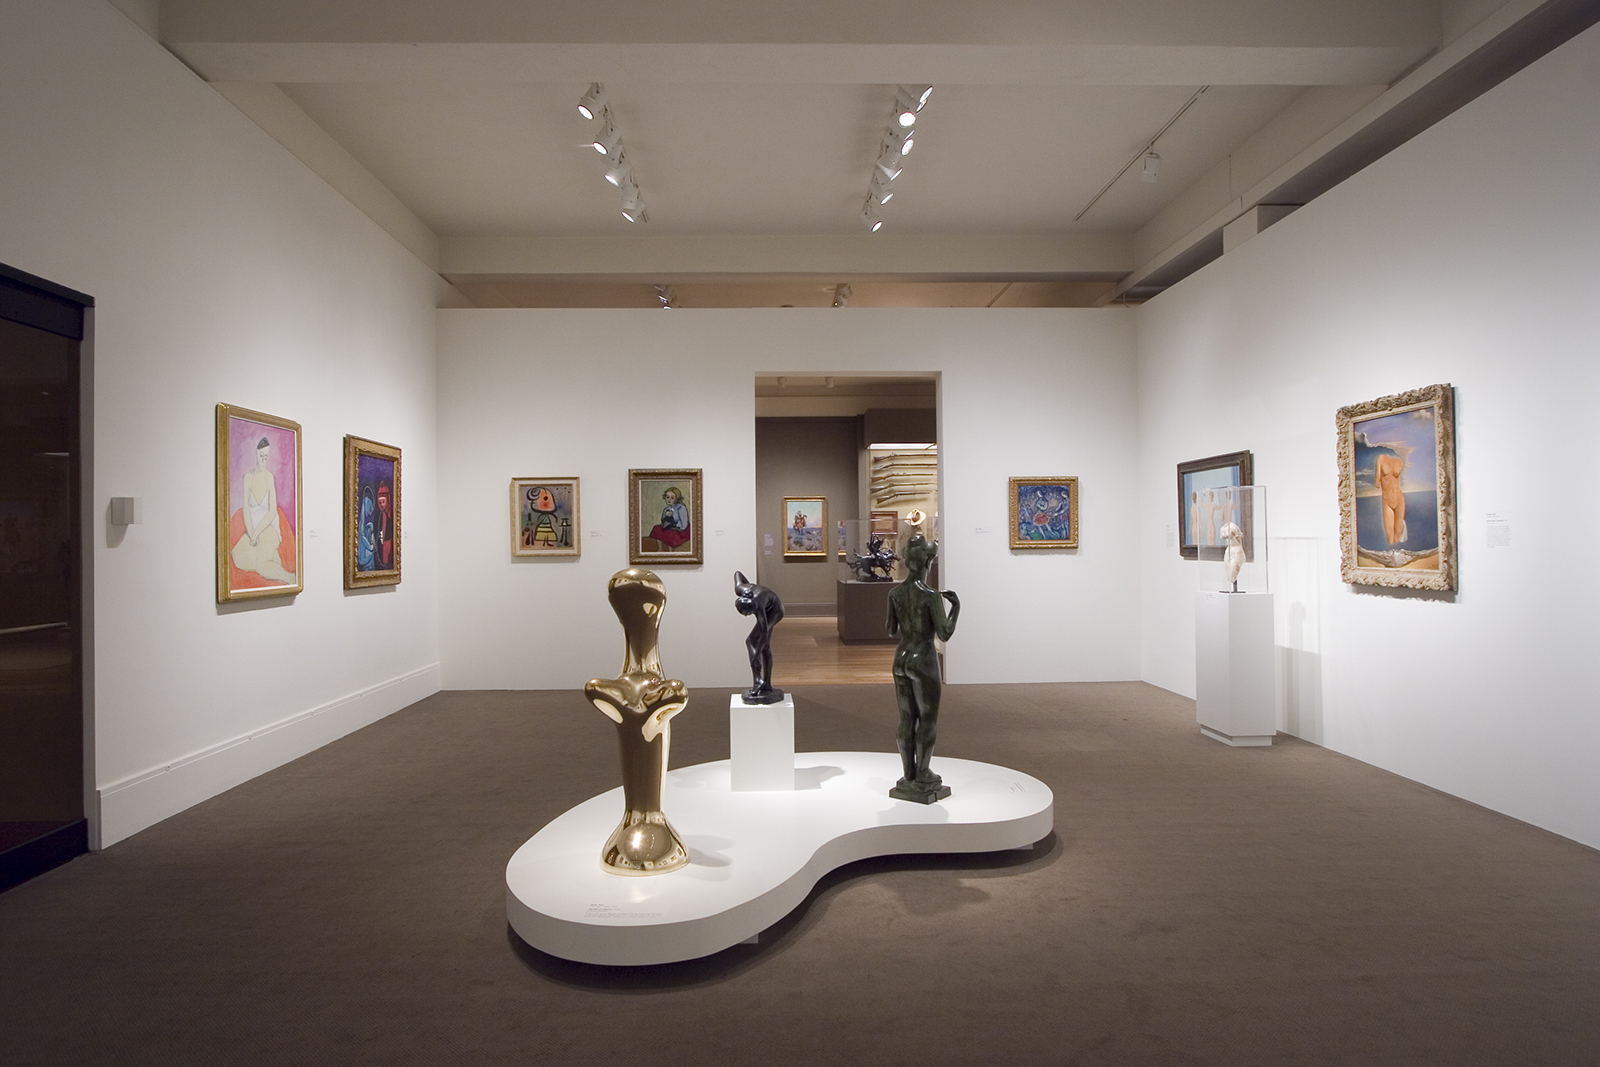 Modern Art section of the Exhibition